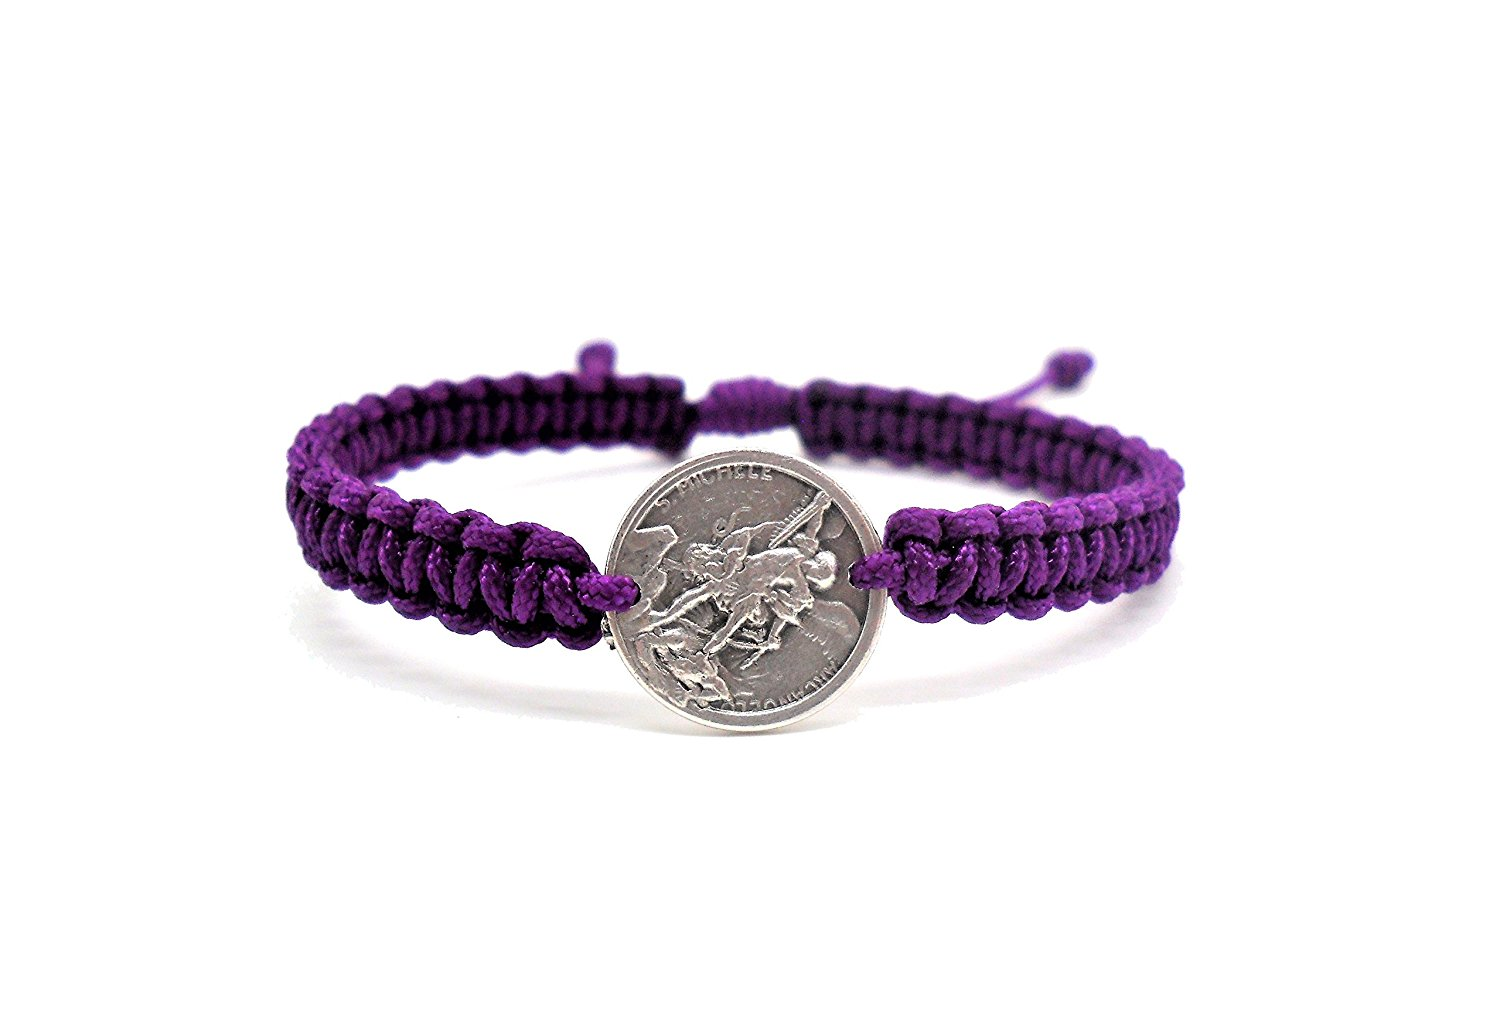 Benedict Gifts Catholic Angel Michael, Guardian Angel Michael Blessing Bracelet, Archangel on Purple Cord, Catholic Bracelet, Handmade Bracelet, Holy Bracelet, Faith, Blessing Bracelet, Fashion